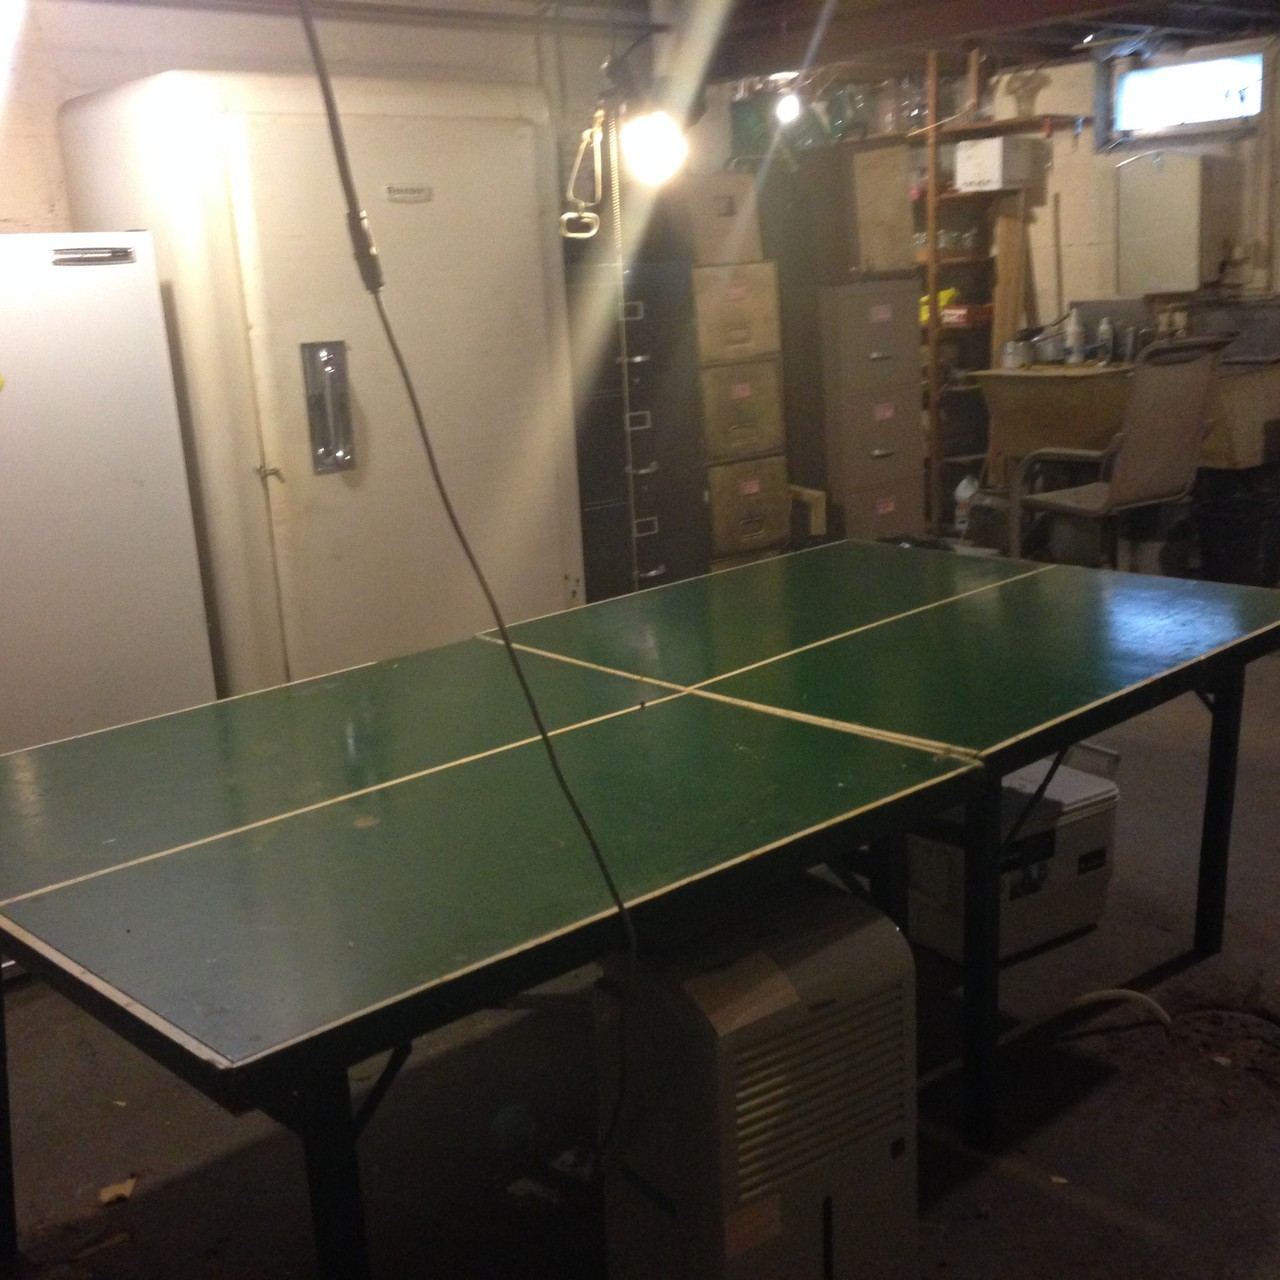 Cleaning the basement in Syracuse, the ping pong table appears! Nov. 2014